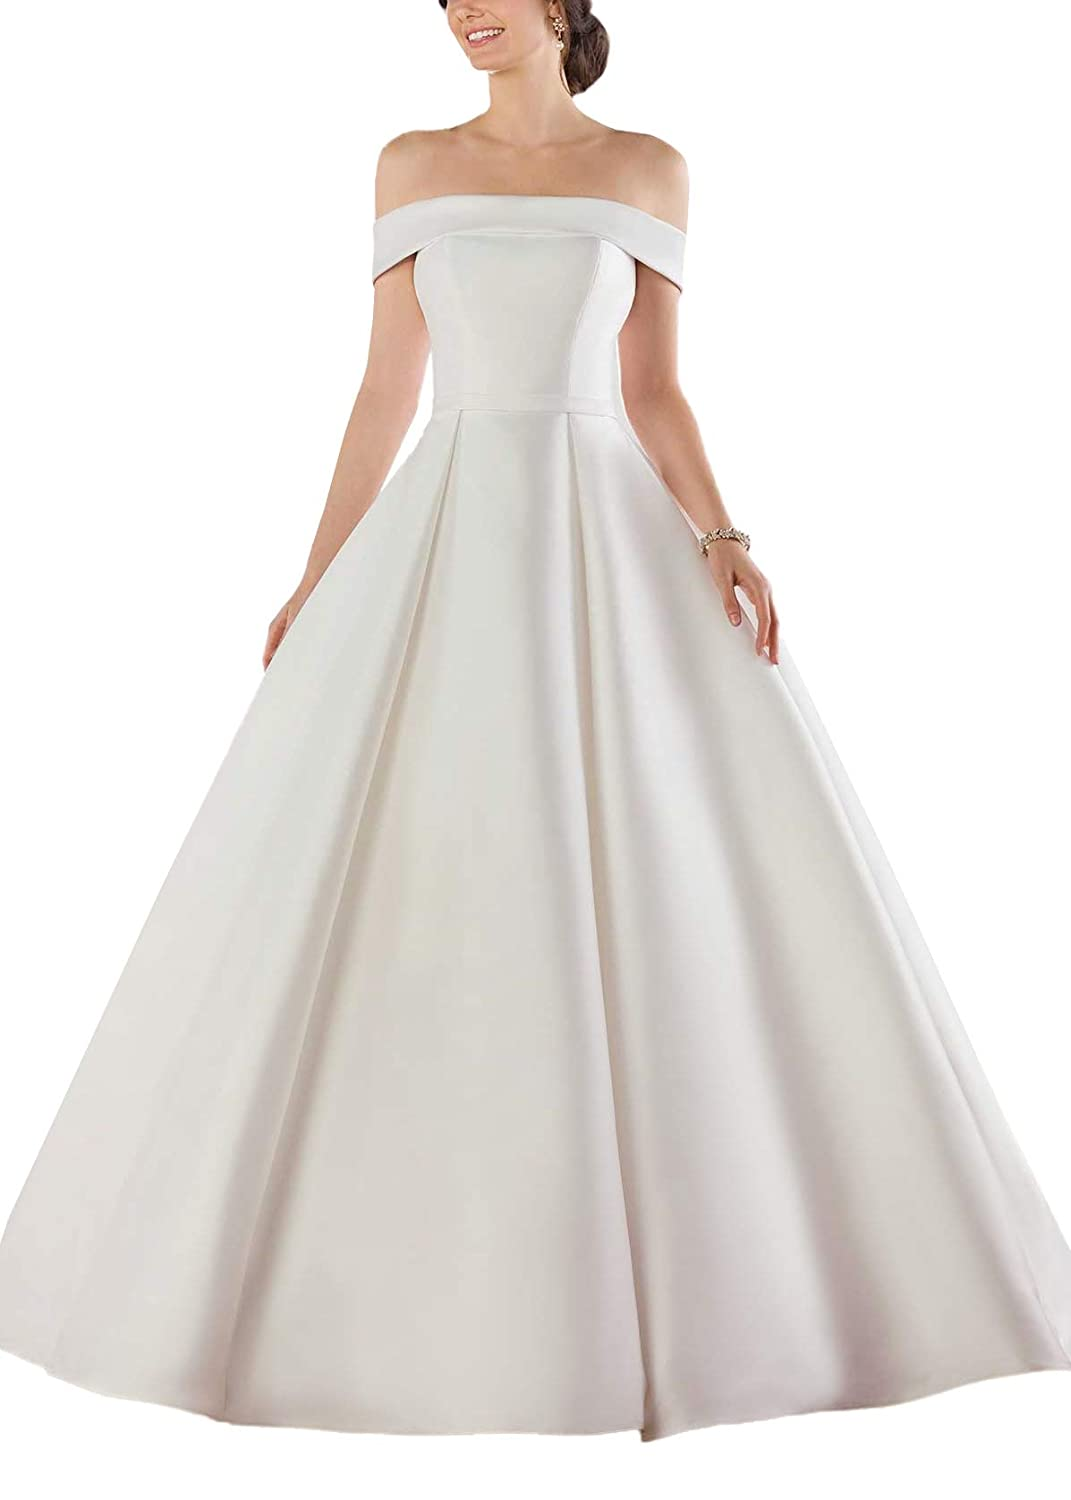 Doramei Womens Ball Gown Wedding Dress Off Shoulder Satin Pleated Button Back Long Bridal Gowns with Sweep Train